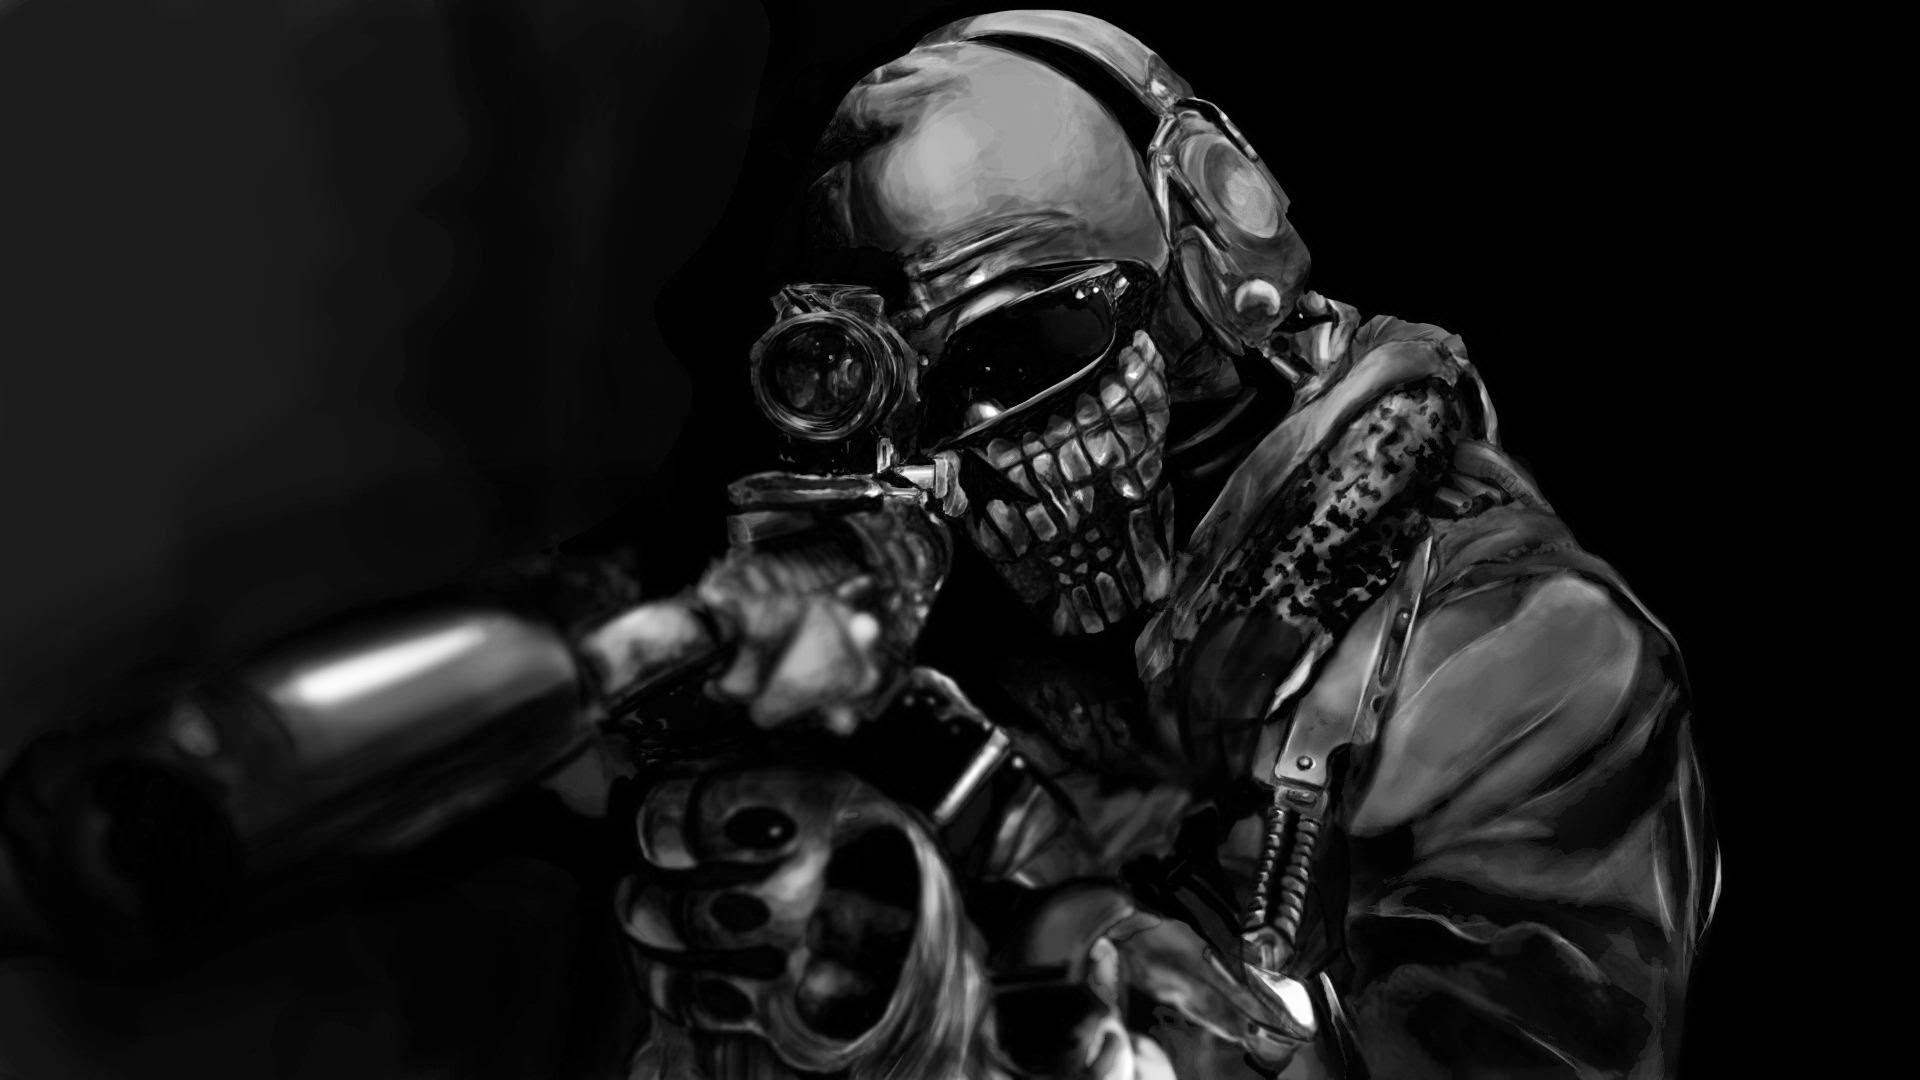 call-of-duty-ghosts-cod-video-game-hd-wallpaper-rifle-mask-1920x1080-04.jpg